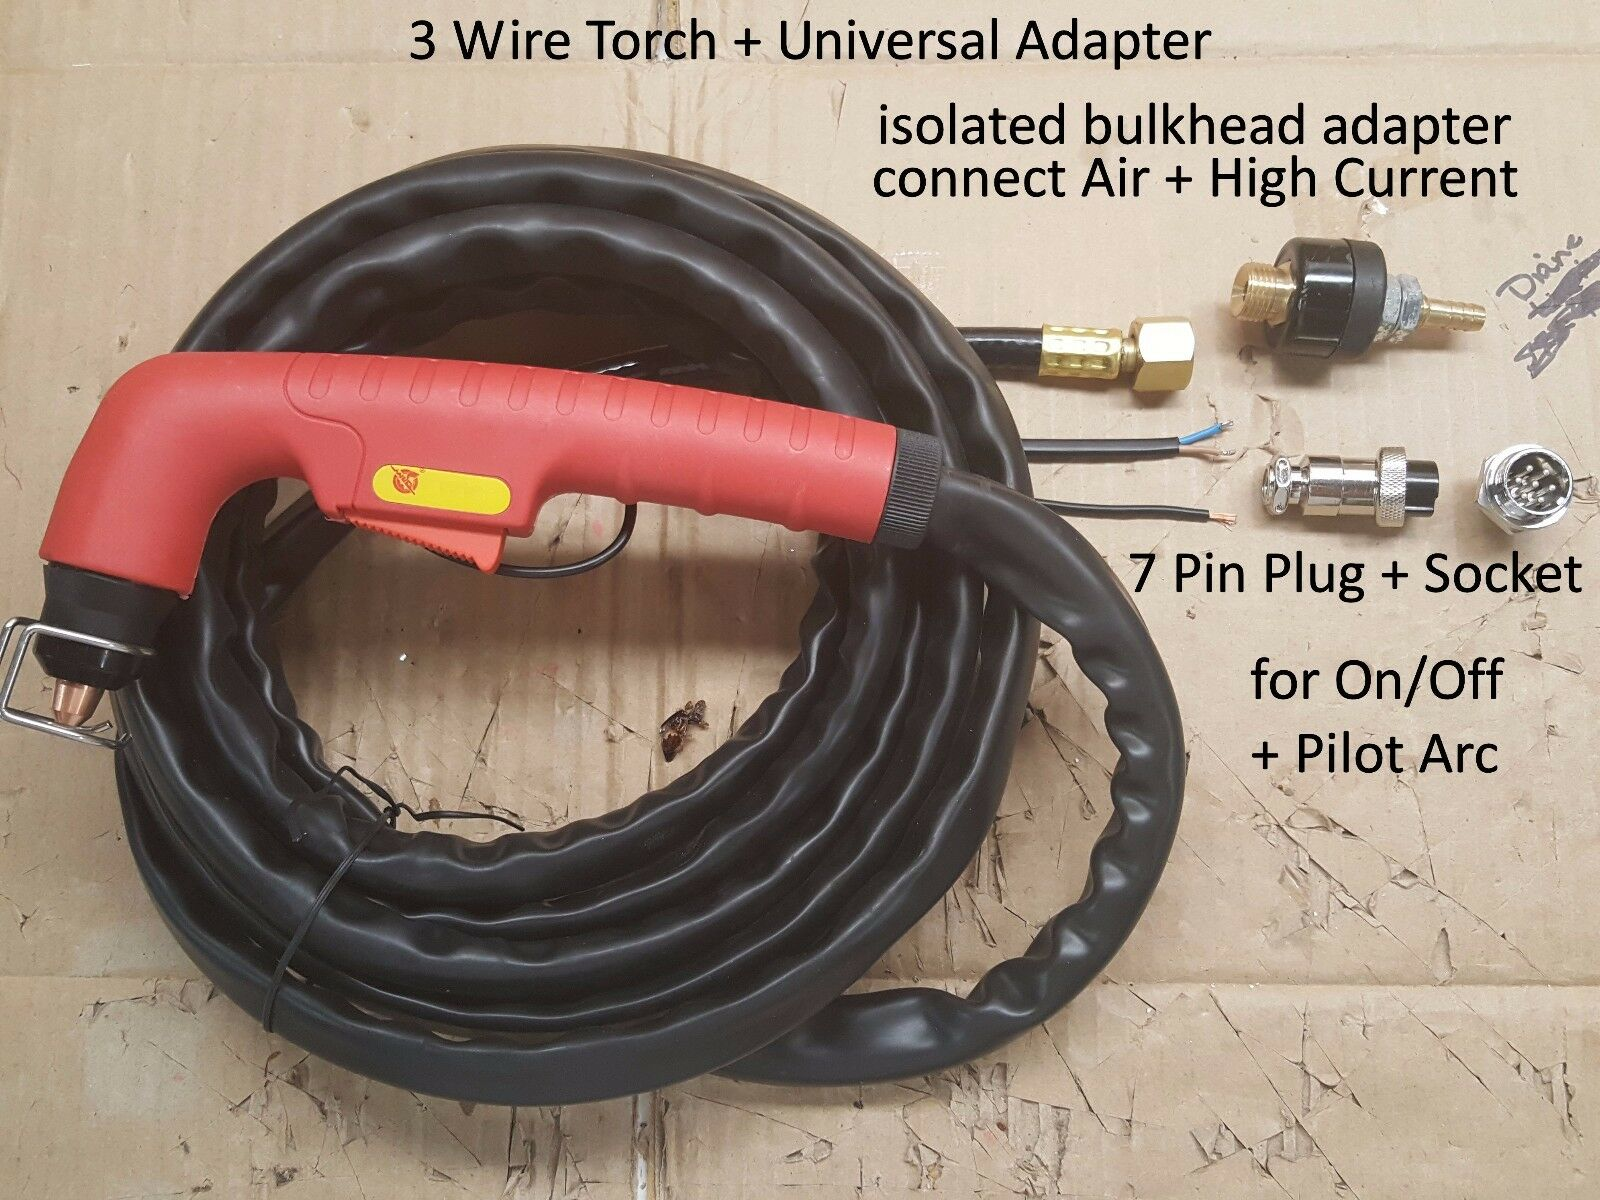 3 Wire Replacement Torch + Adapter + 7 Pin Plug Fix Repair ... Dayton Plasma Cutter Wiring Diagram on